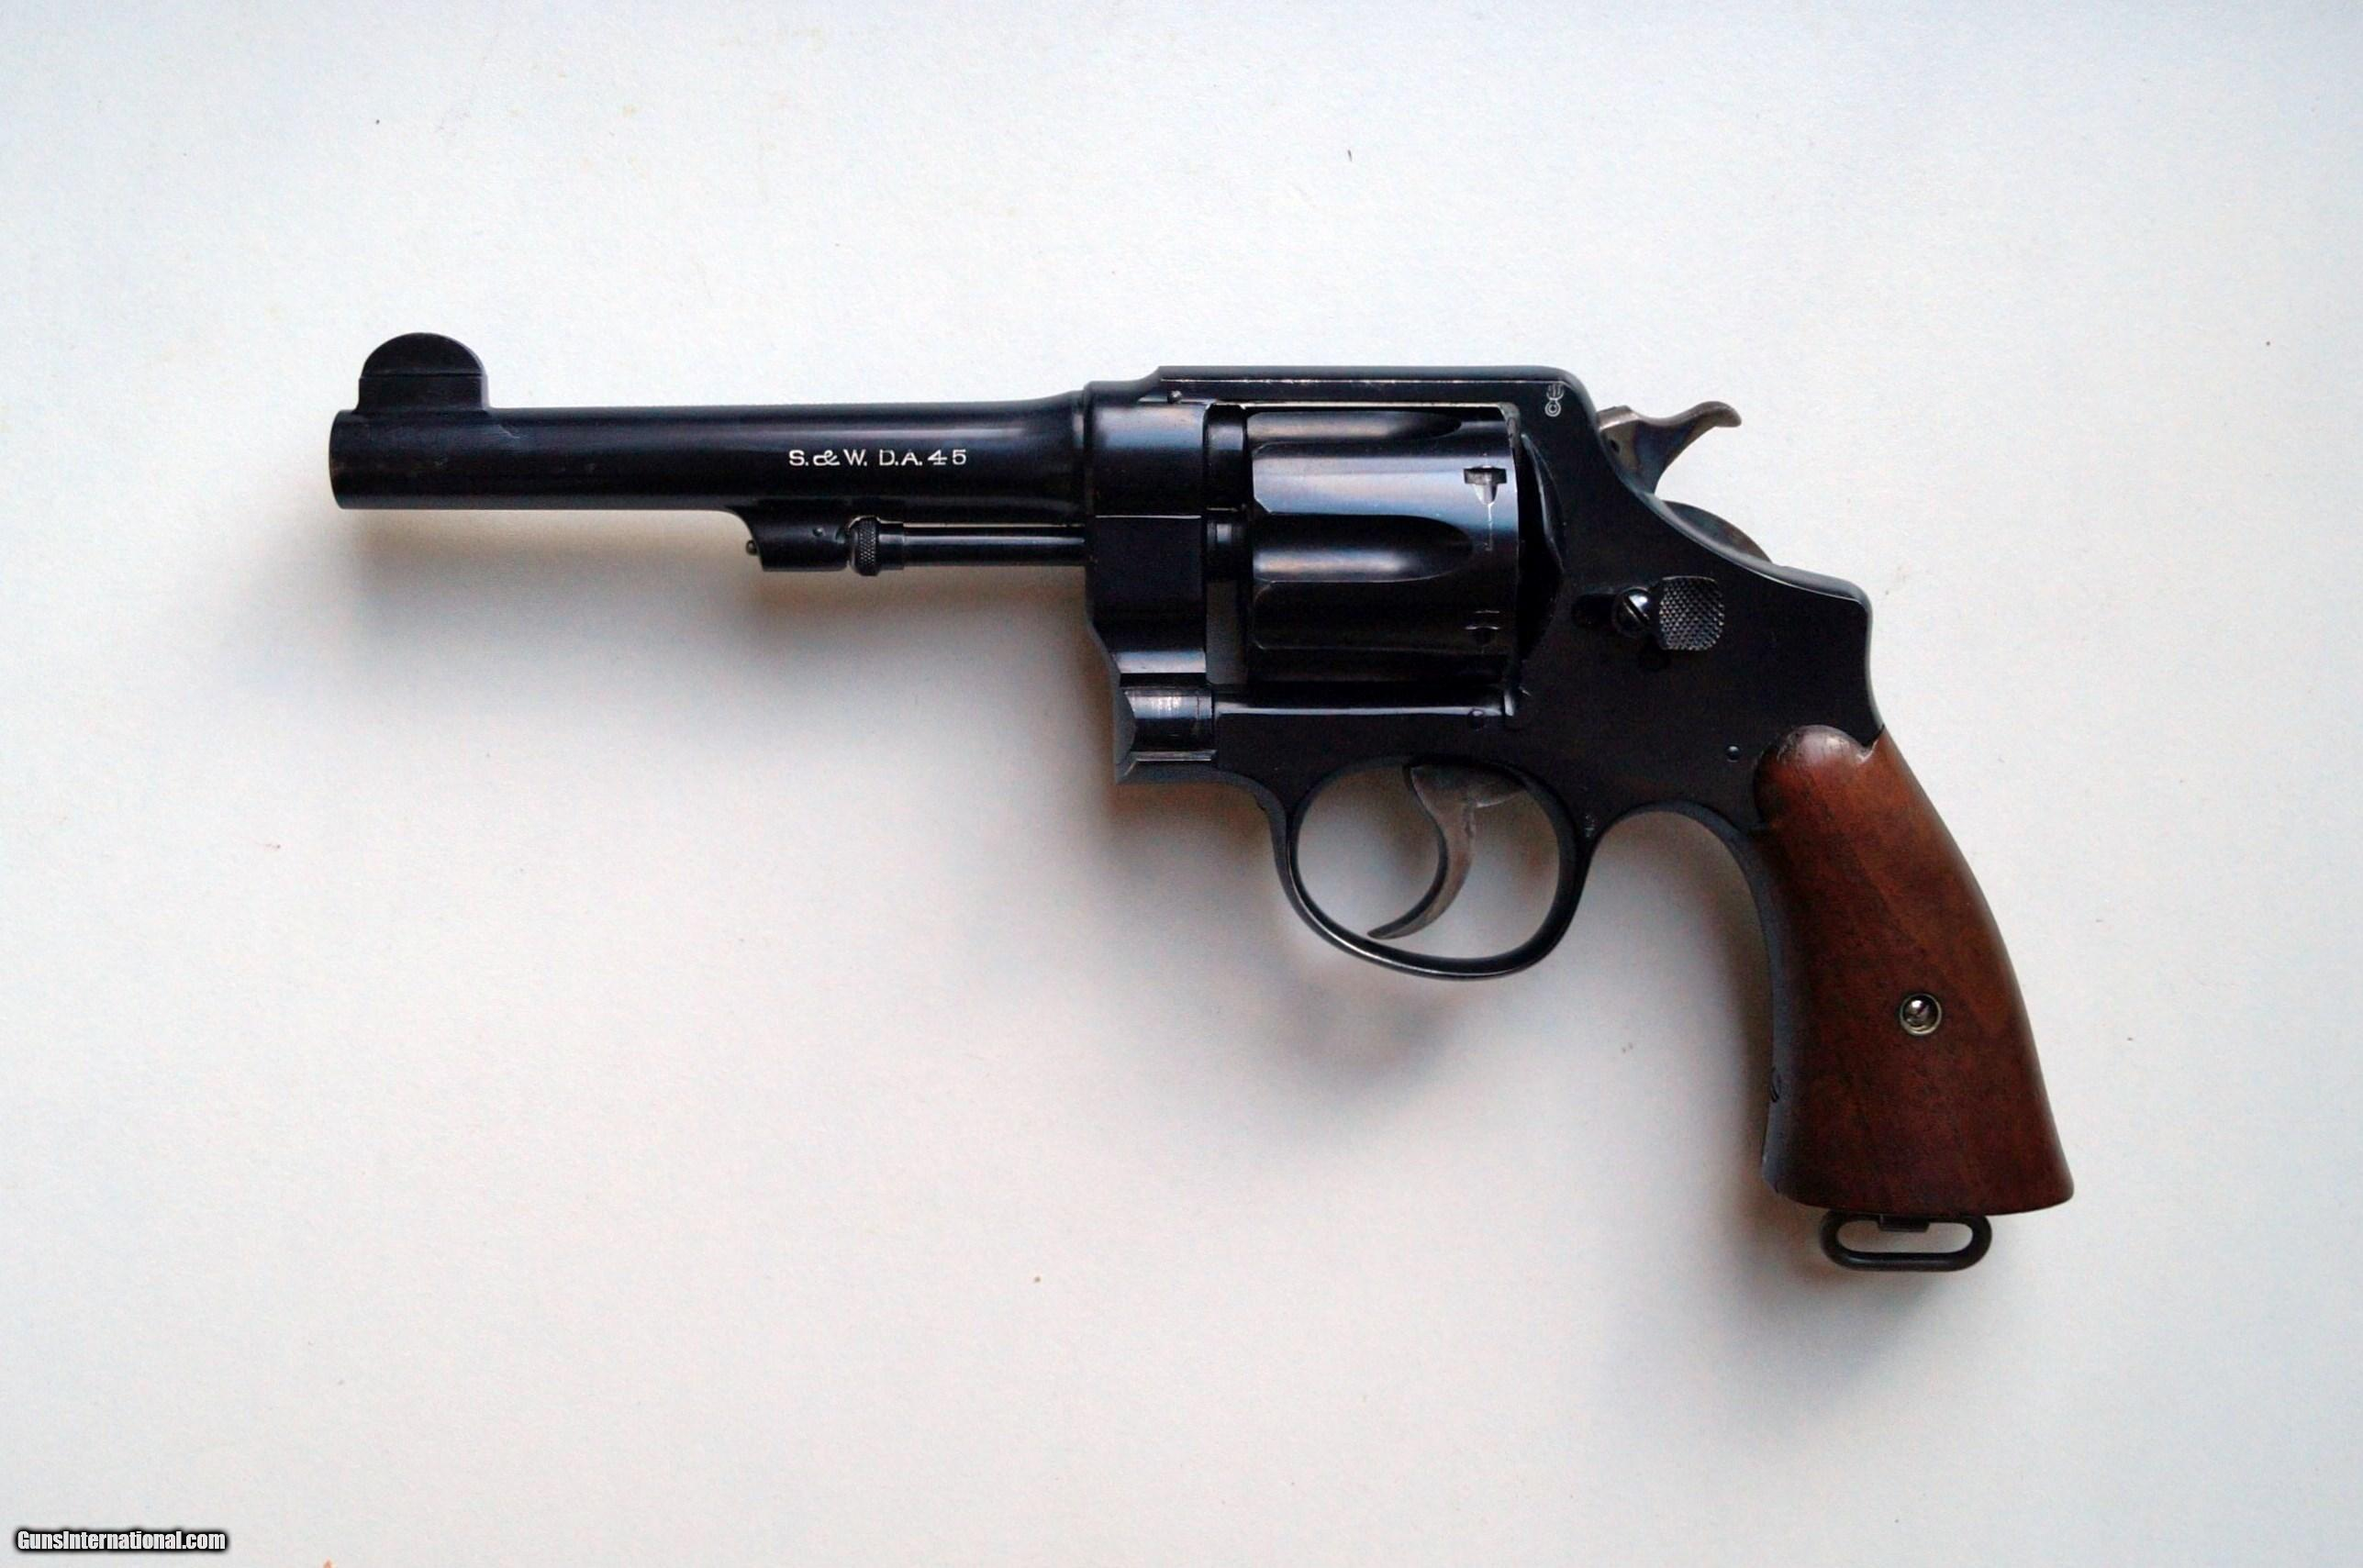 Military Guns For Sale >> SMITH & WESSON MODEL 1917 U.S. ARMY REVOLVER / .45 CAL WITH ORIGINAL HOLSTER